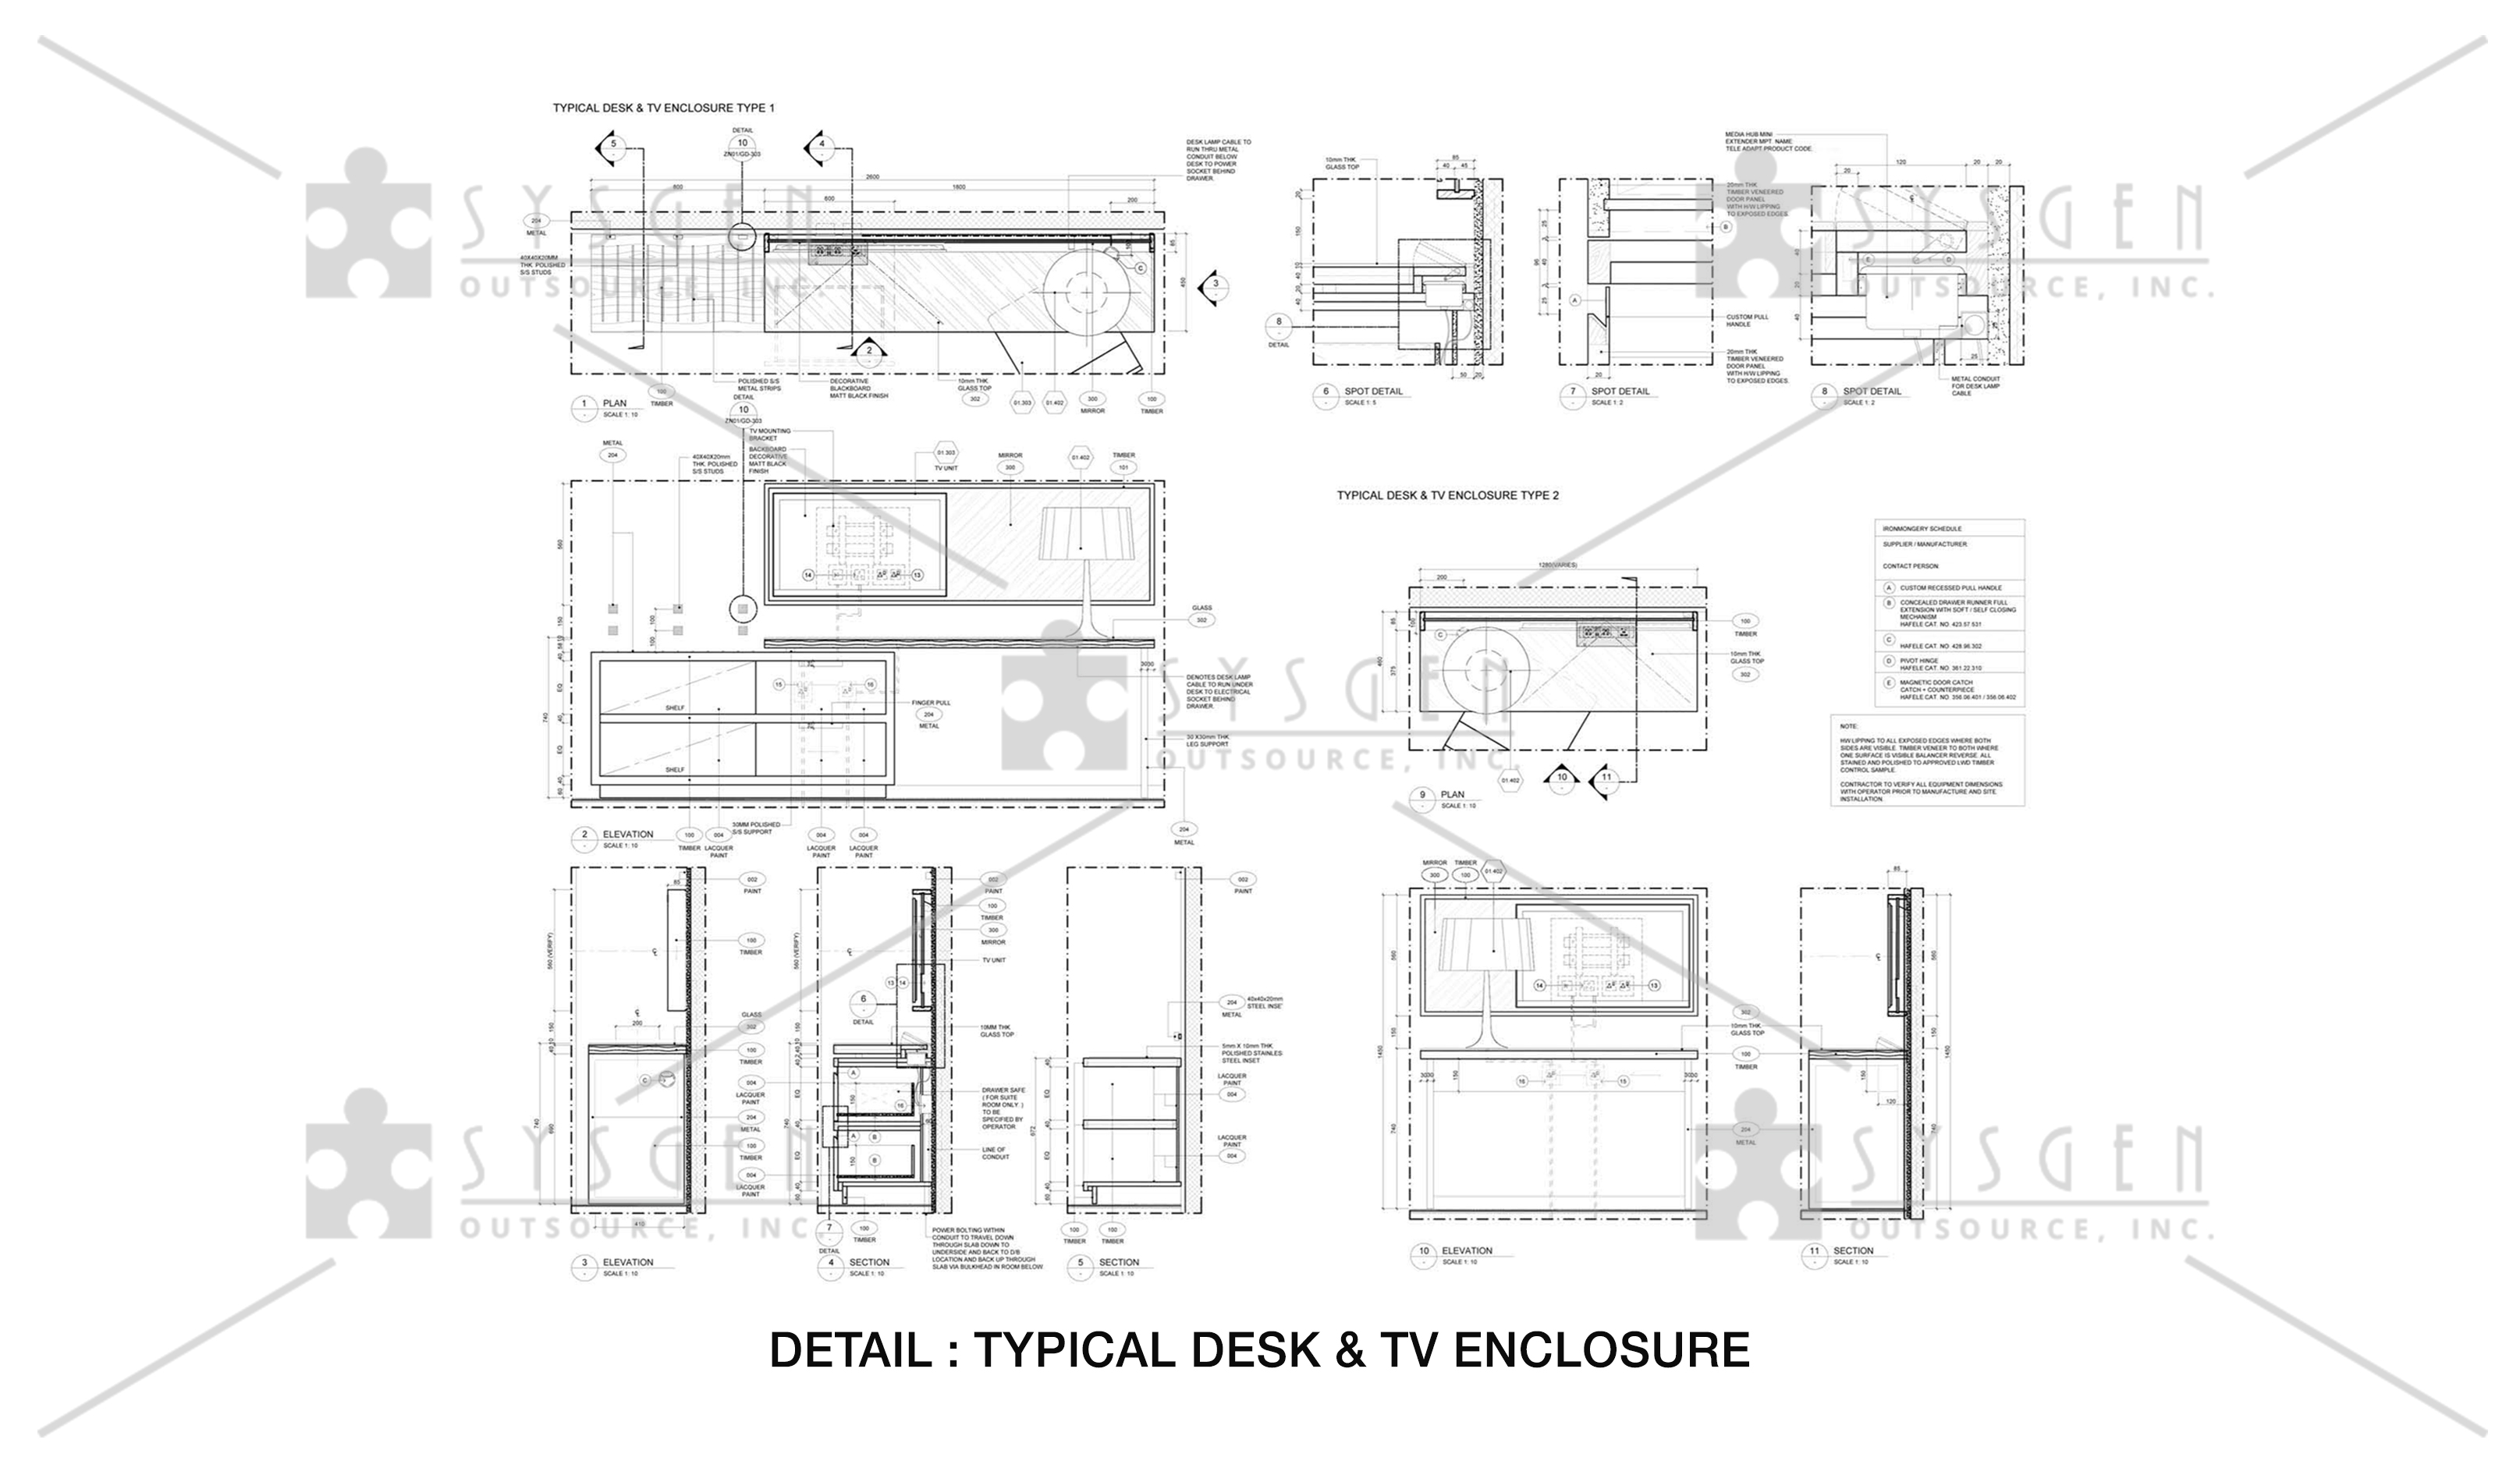 sysgen-outsource-cad-outsourcing-services-interior-design-hotel4